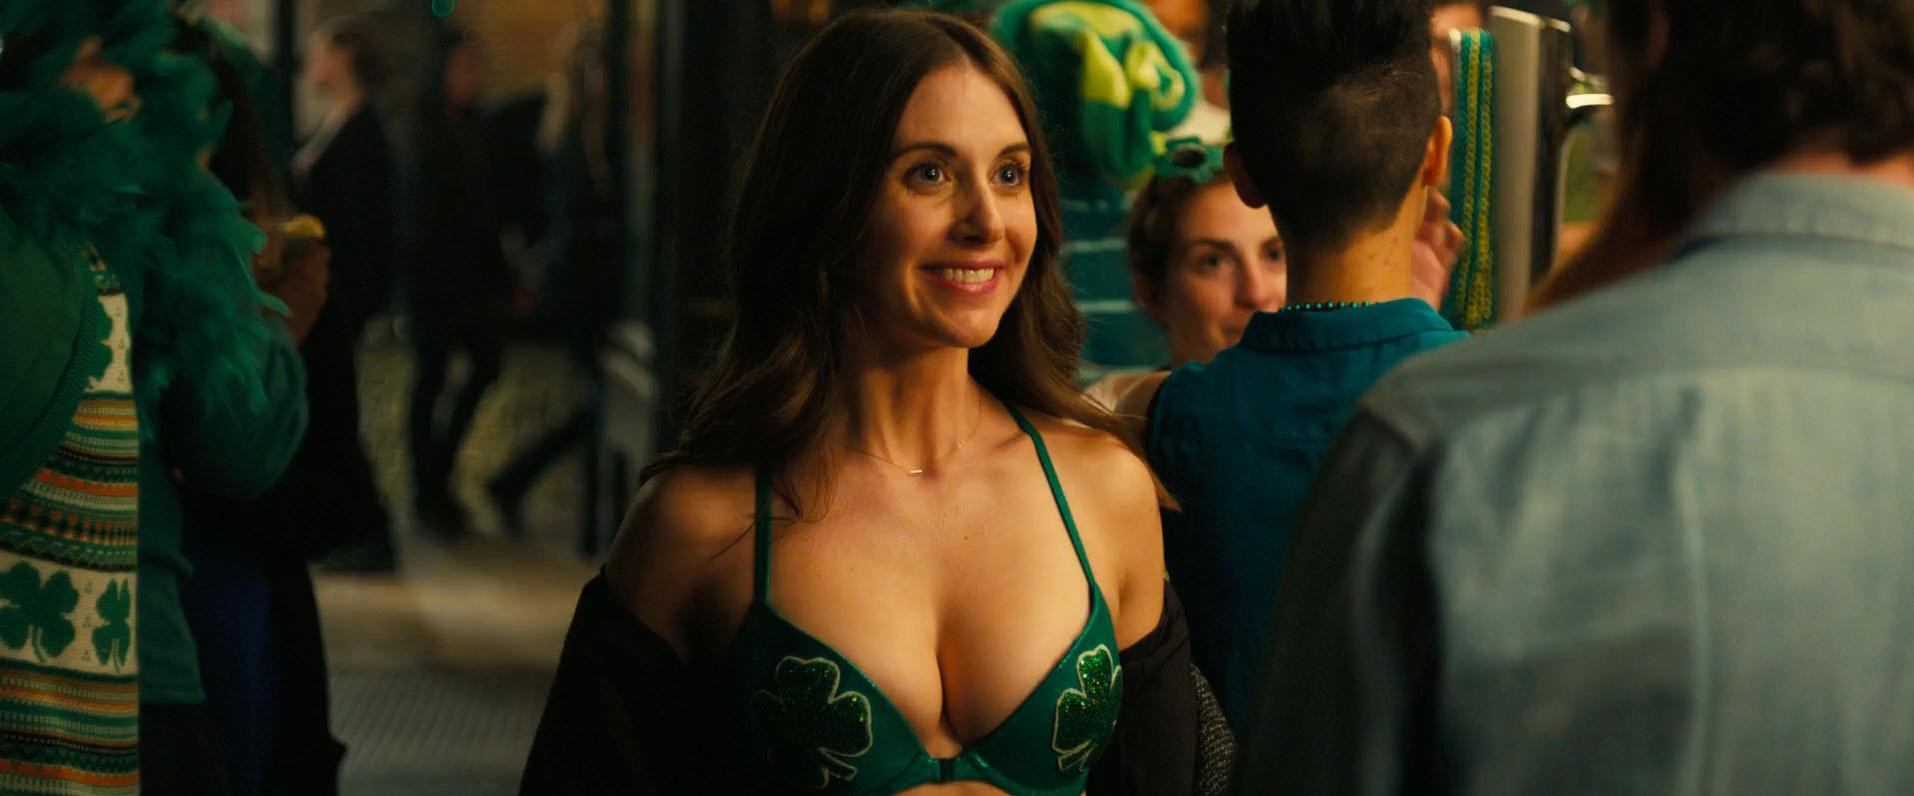 Alison Brie sexy - How to Be Single (2016)